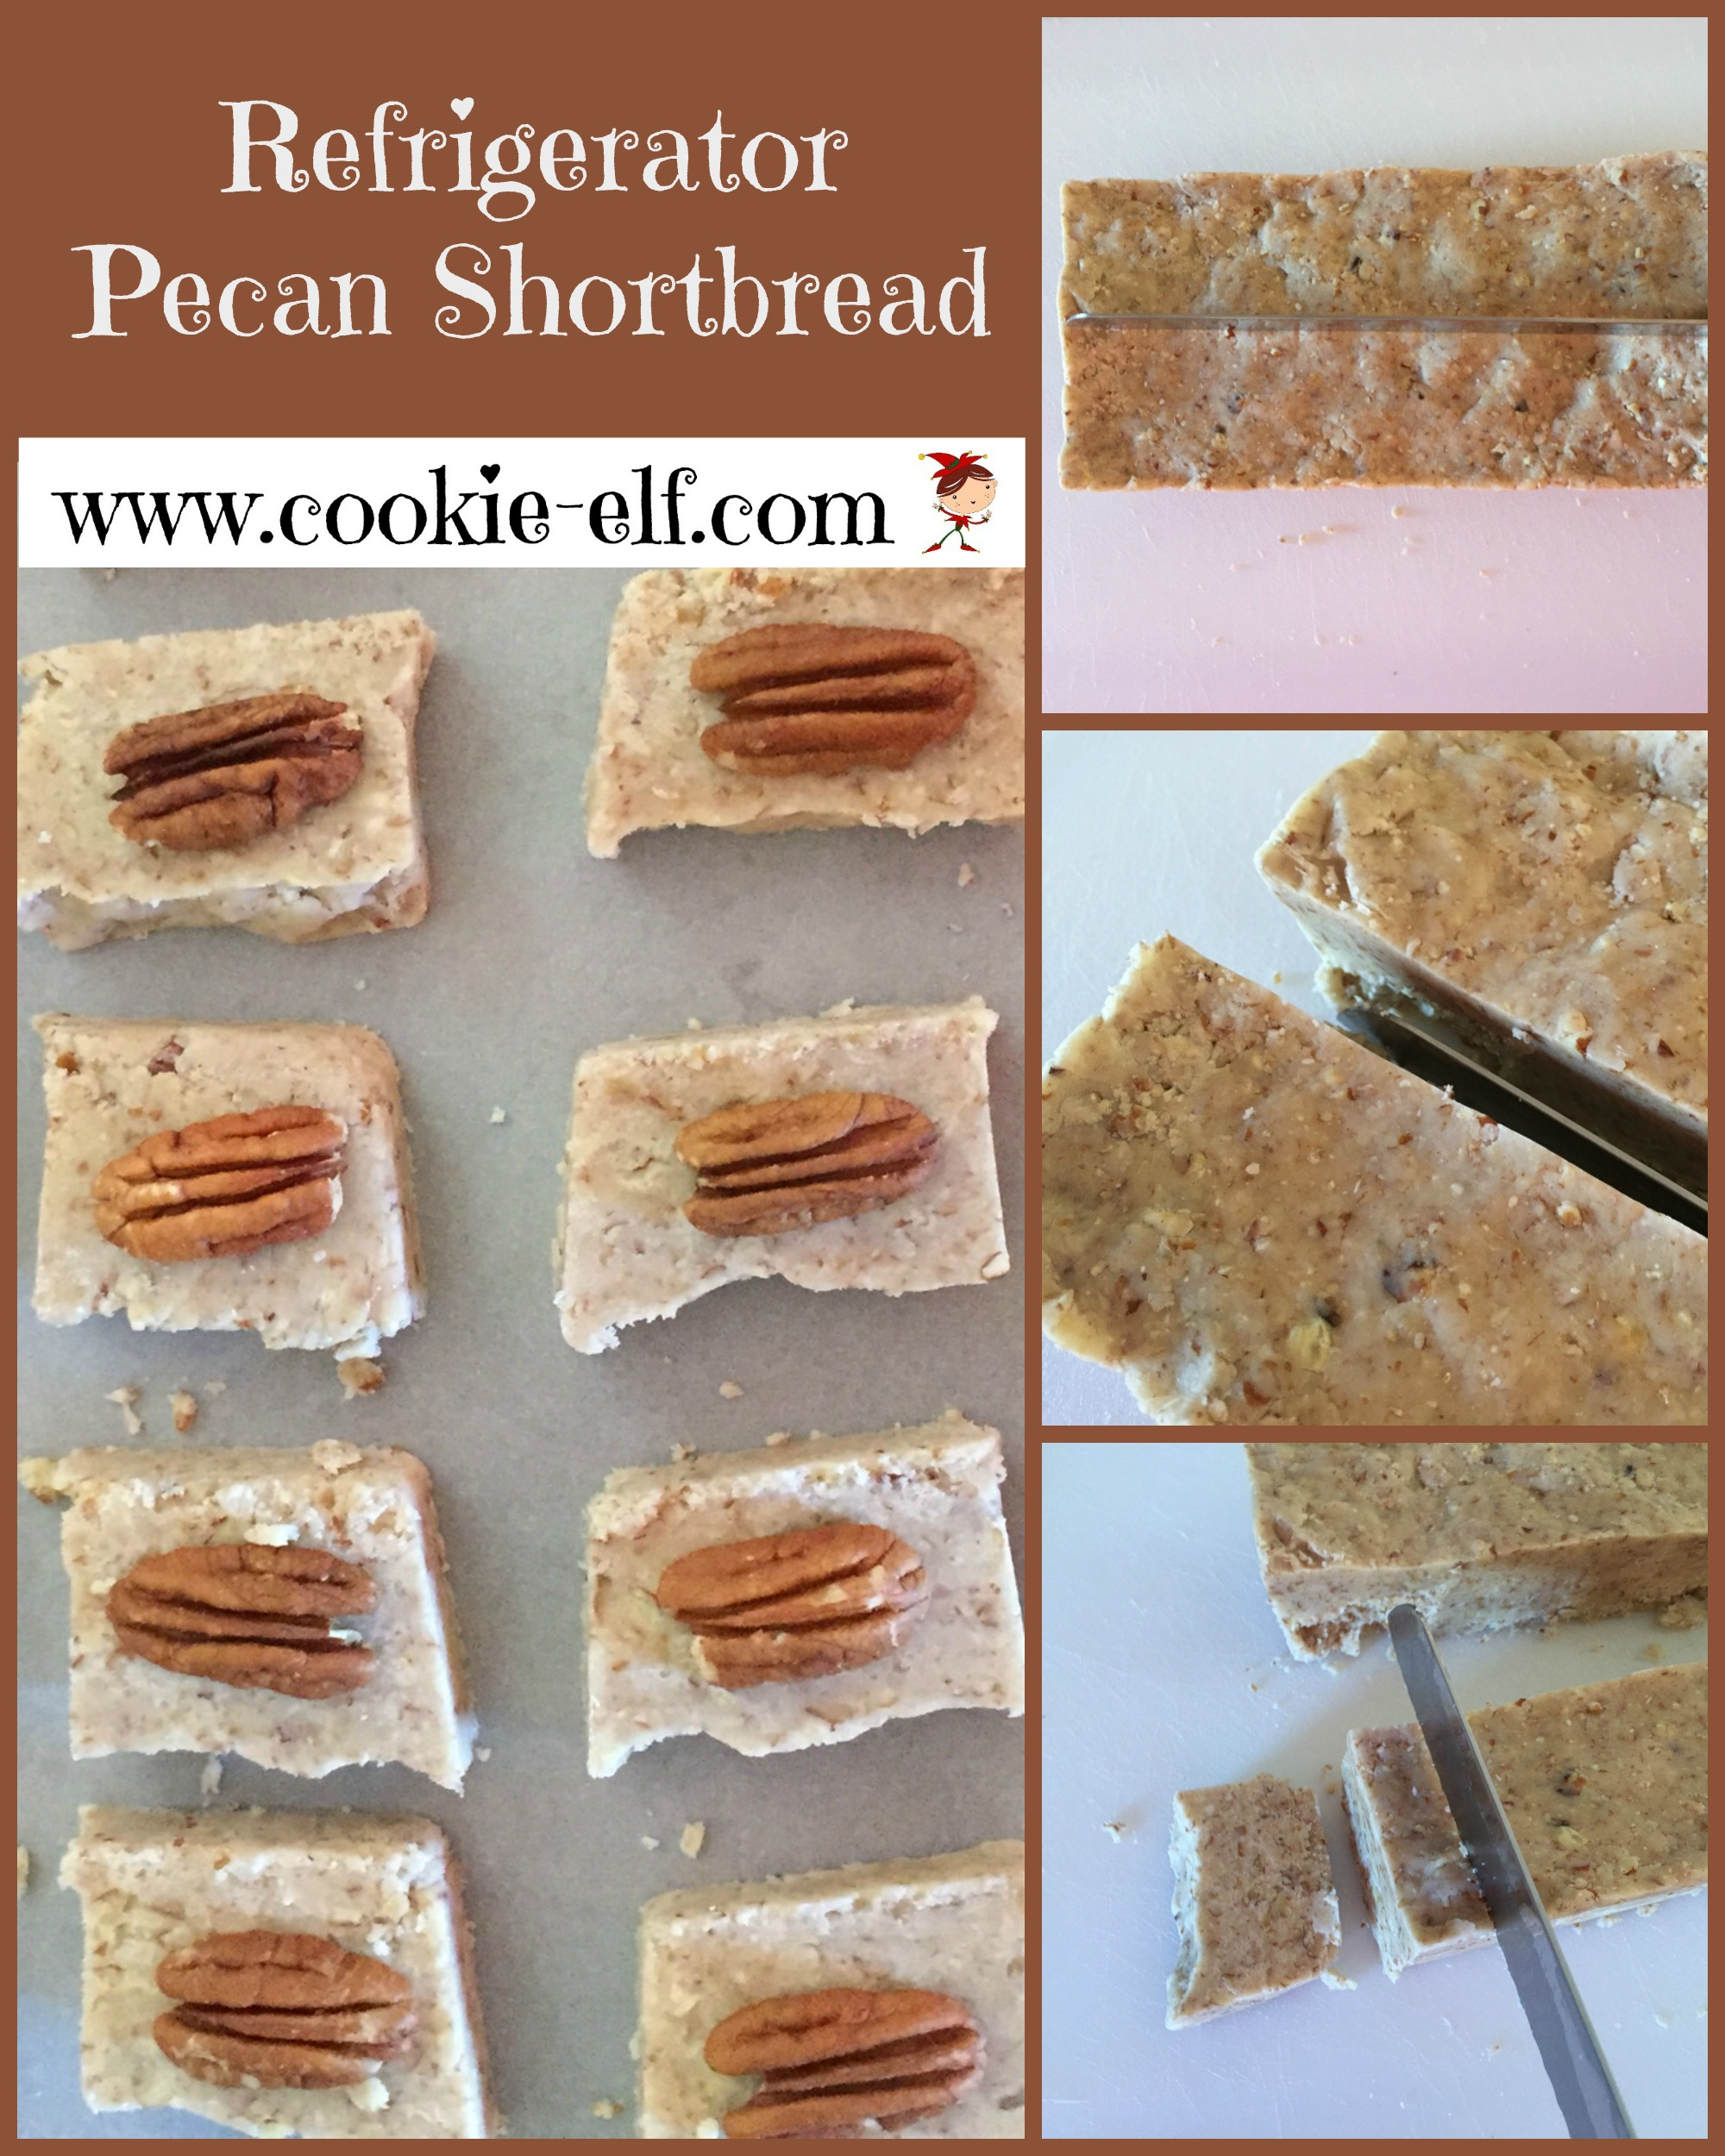 Refrigerator Pecan Shortbread from The Cookie Elf